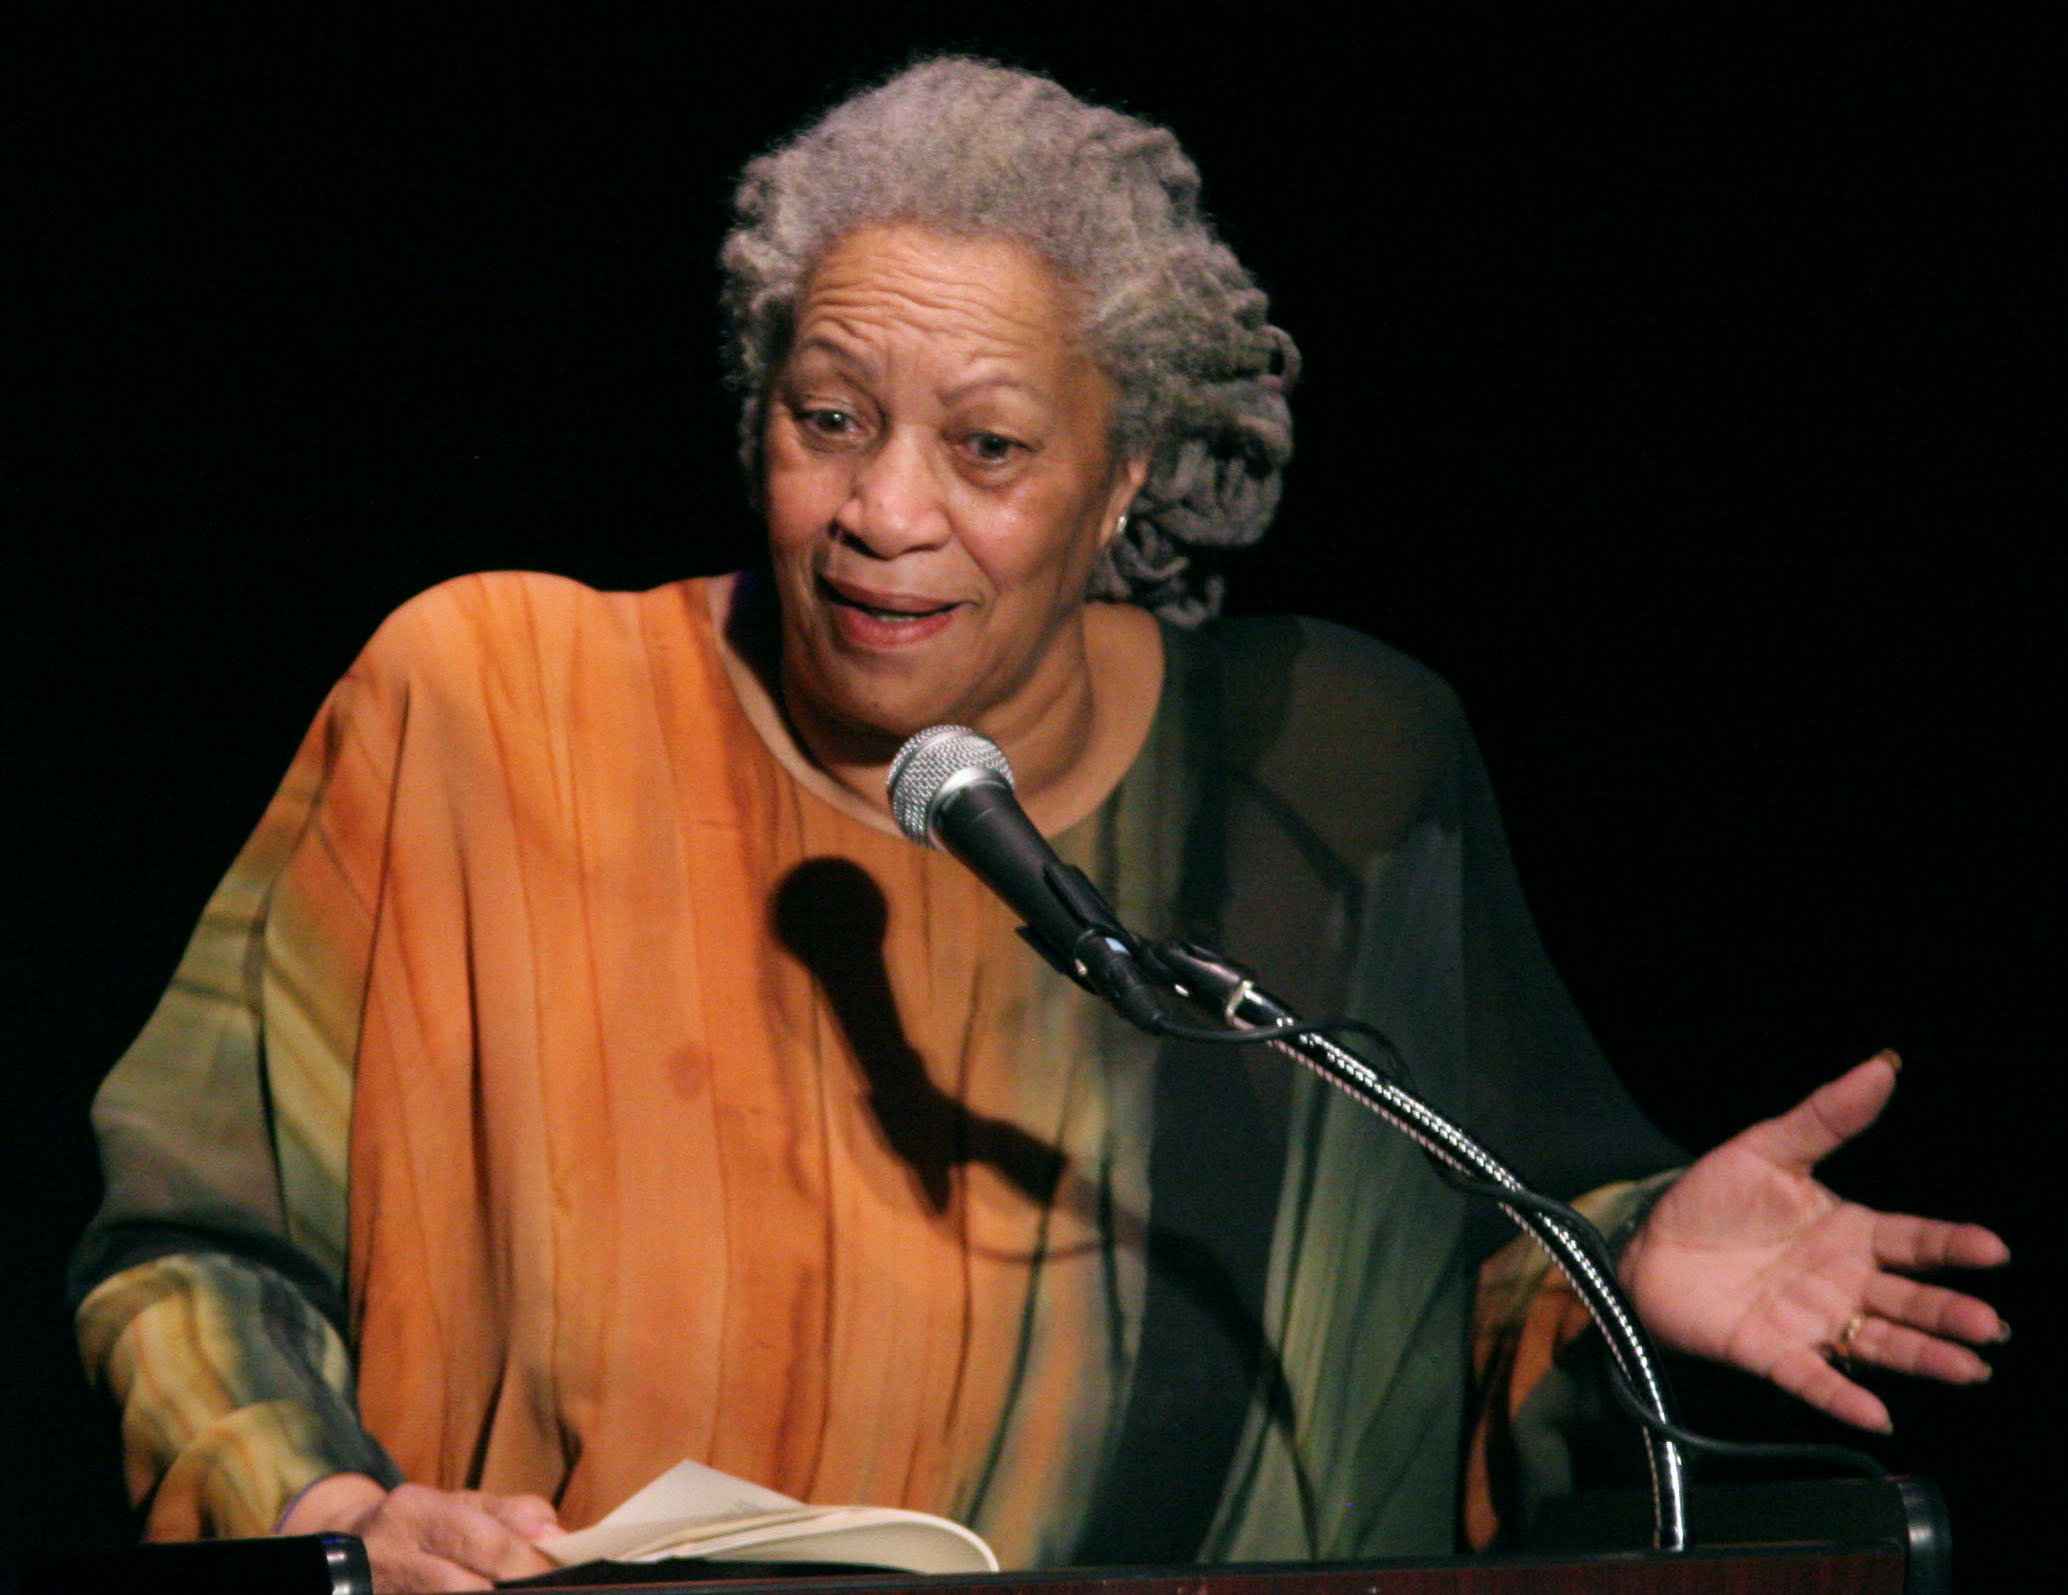 Author Toni Morrison published her first book at the age of 40